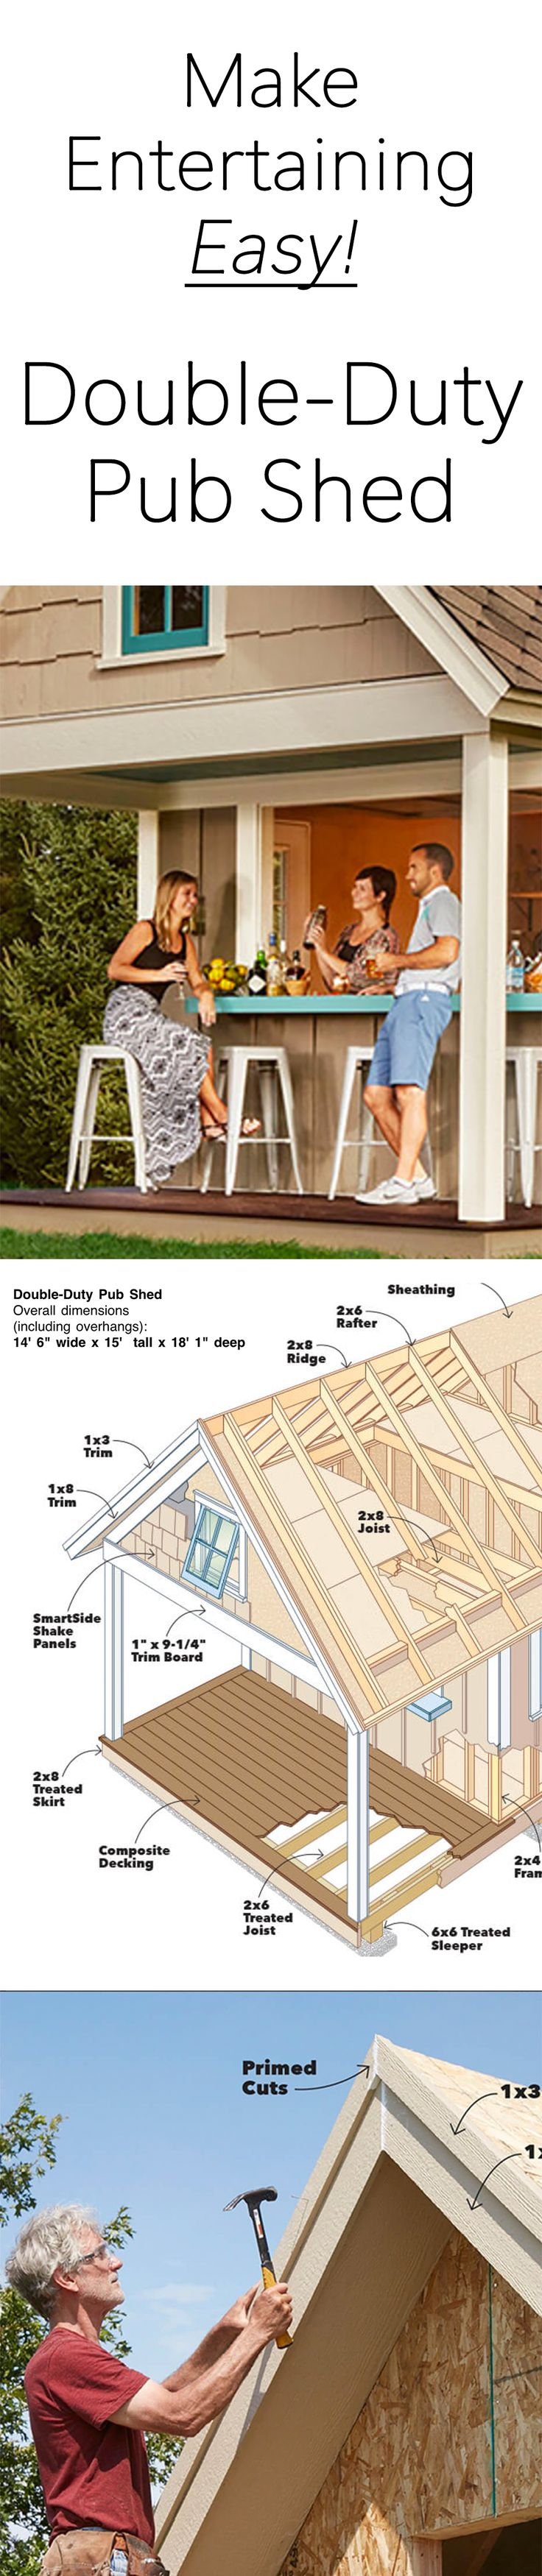 The perfect party spot, plus tons of storage. This year's shed is one of the most versatile we've ever built.  The bar and covered patio area make it a perfect place to entertain or just hang out. The steep roof and sturdy lofts provide tons of extra storage space. And the high-tech materials, including reflective roof sheathing and prefinished floor panels, add to the shed's comfort and convenience. Of course, if you don't want a bar, you can install a bank of windows in its place.